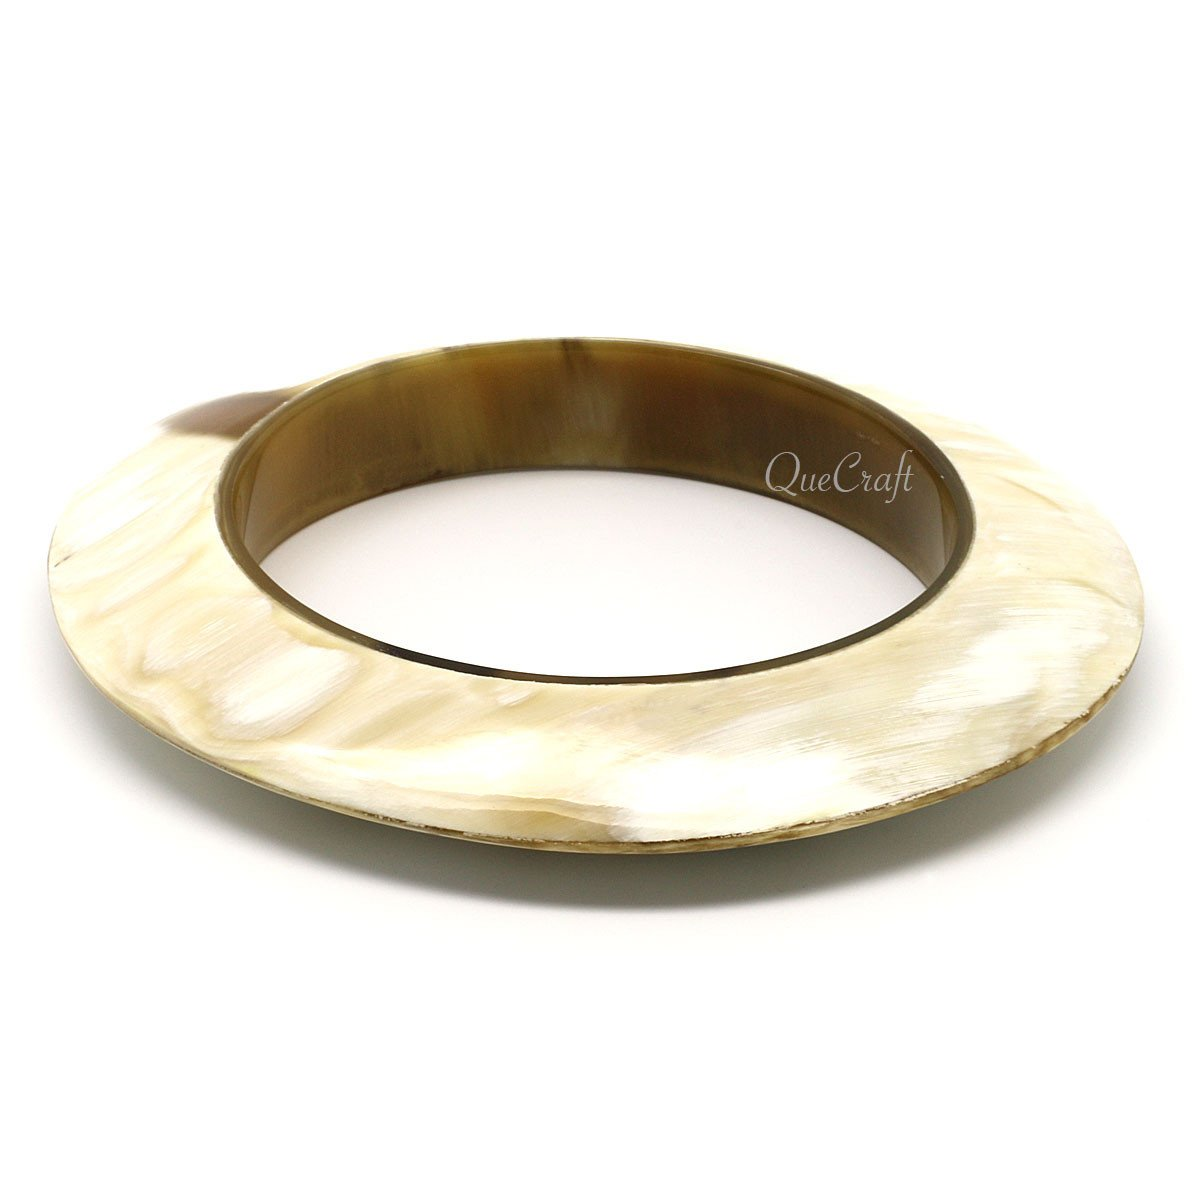 Horn Bangle Bracelet #9433 - HORN.JEWELRY by QueCraft